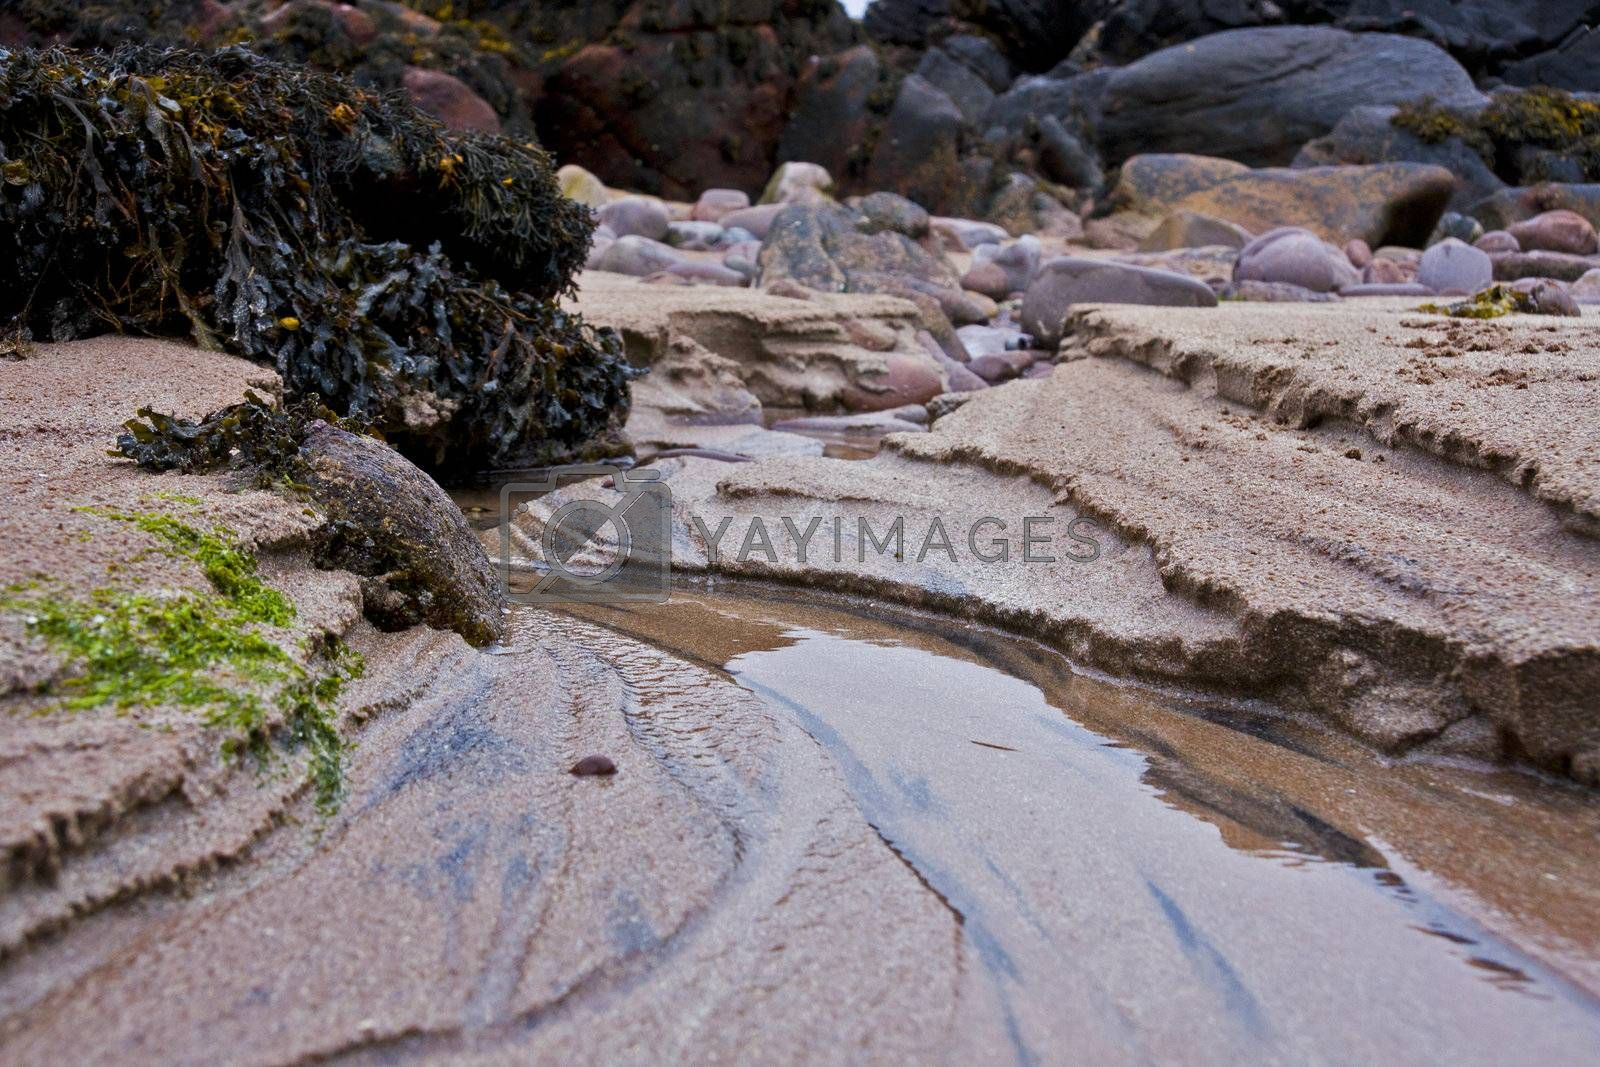 closeup of costal scene with sand, water and stones